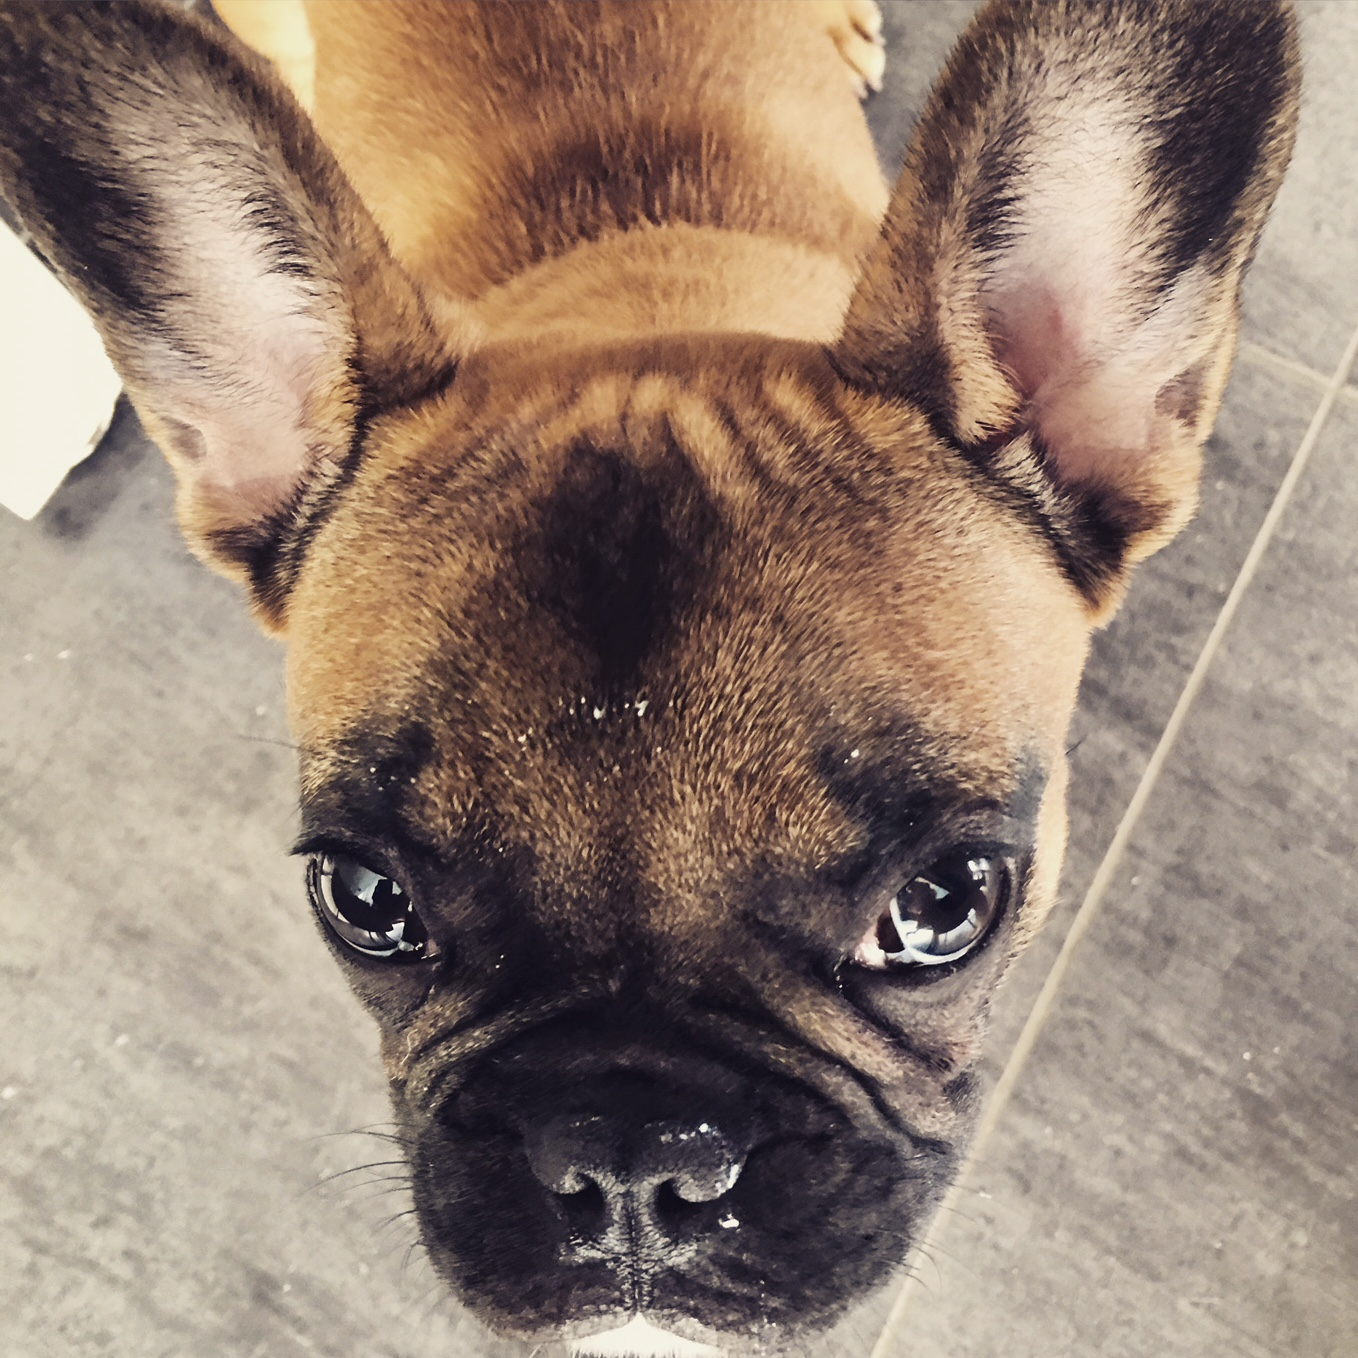 janusz_the_frenchie_17